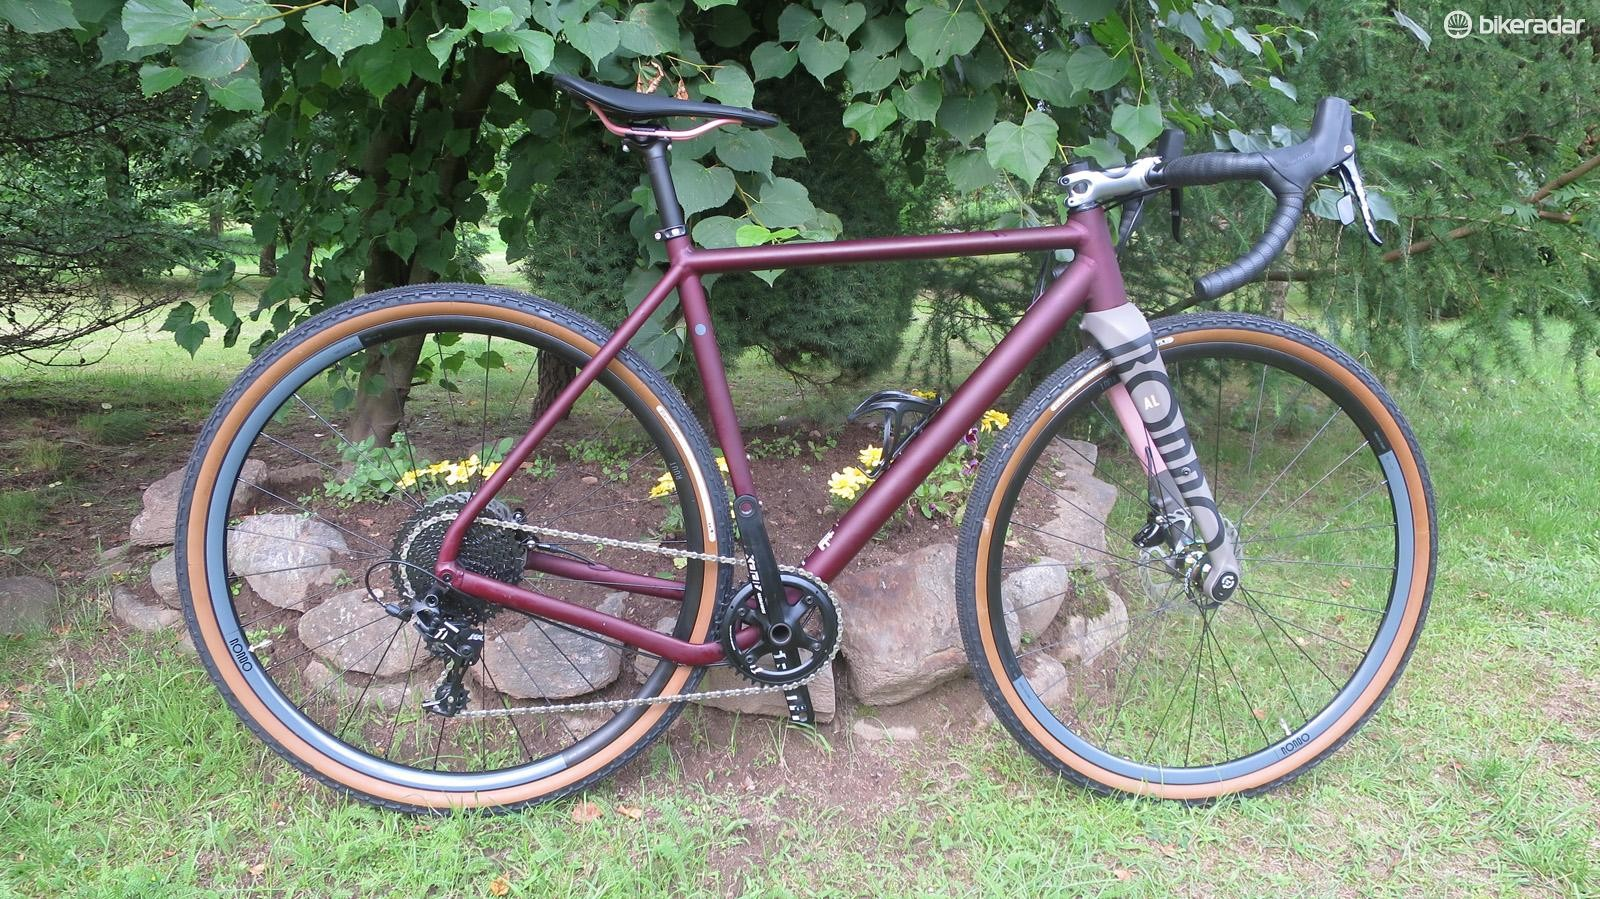 Entry in the Ruut family starts with the alumium Ruut AL at £1,599